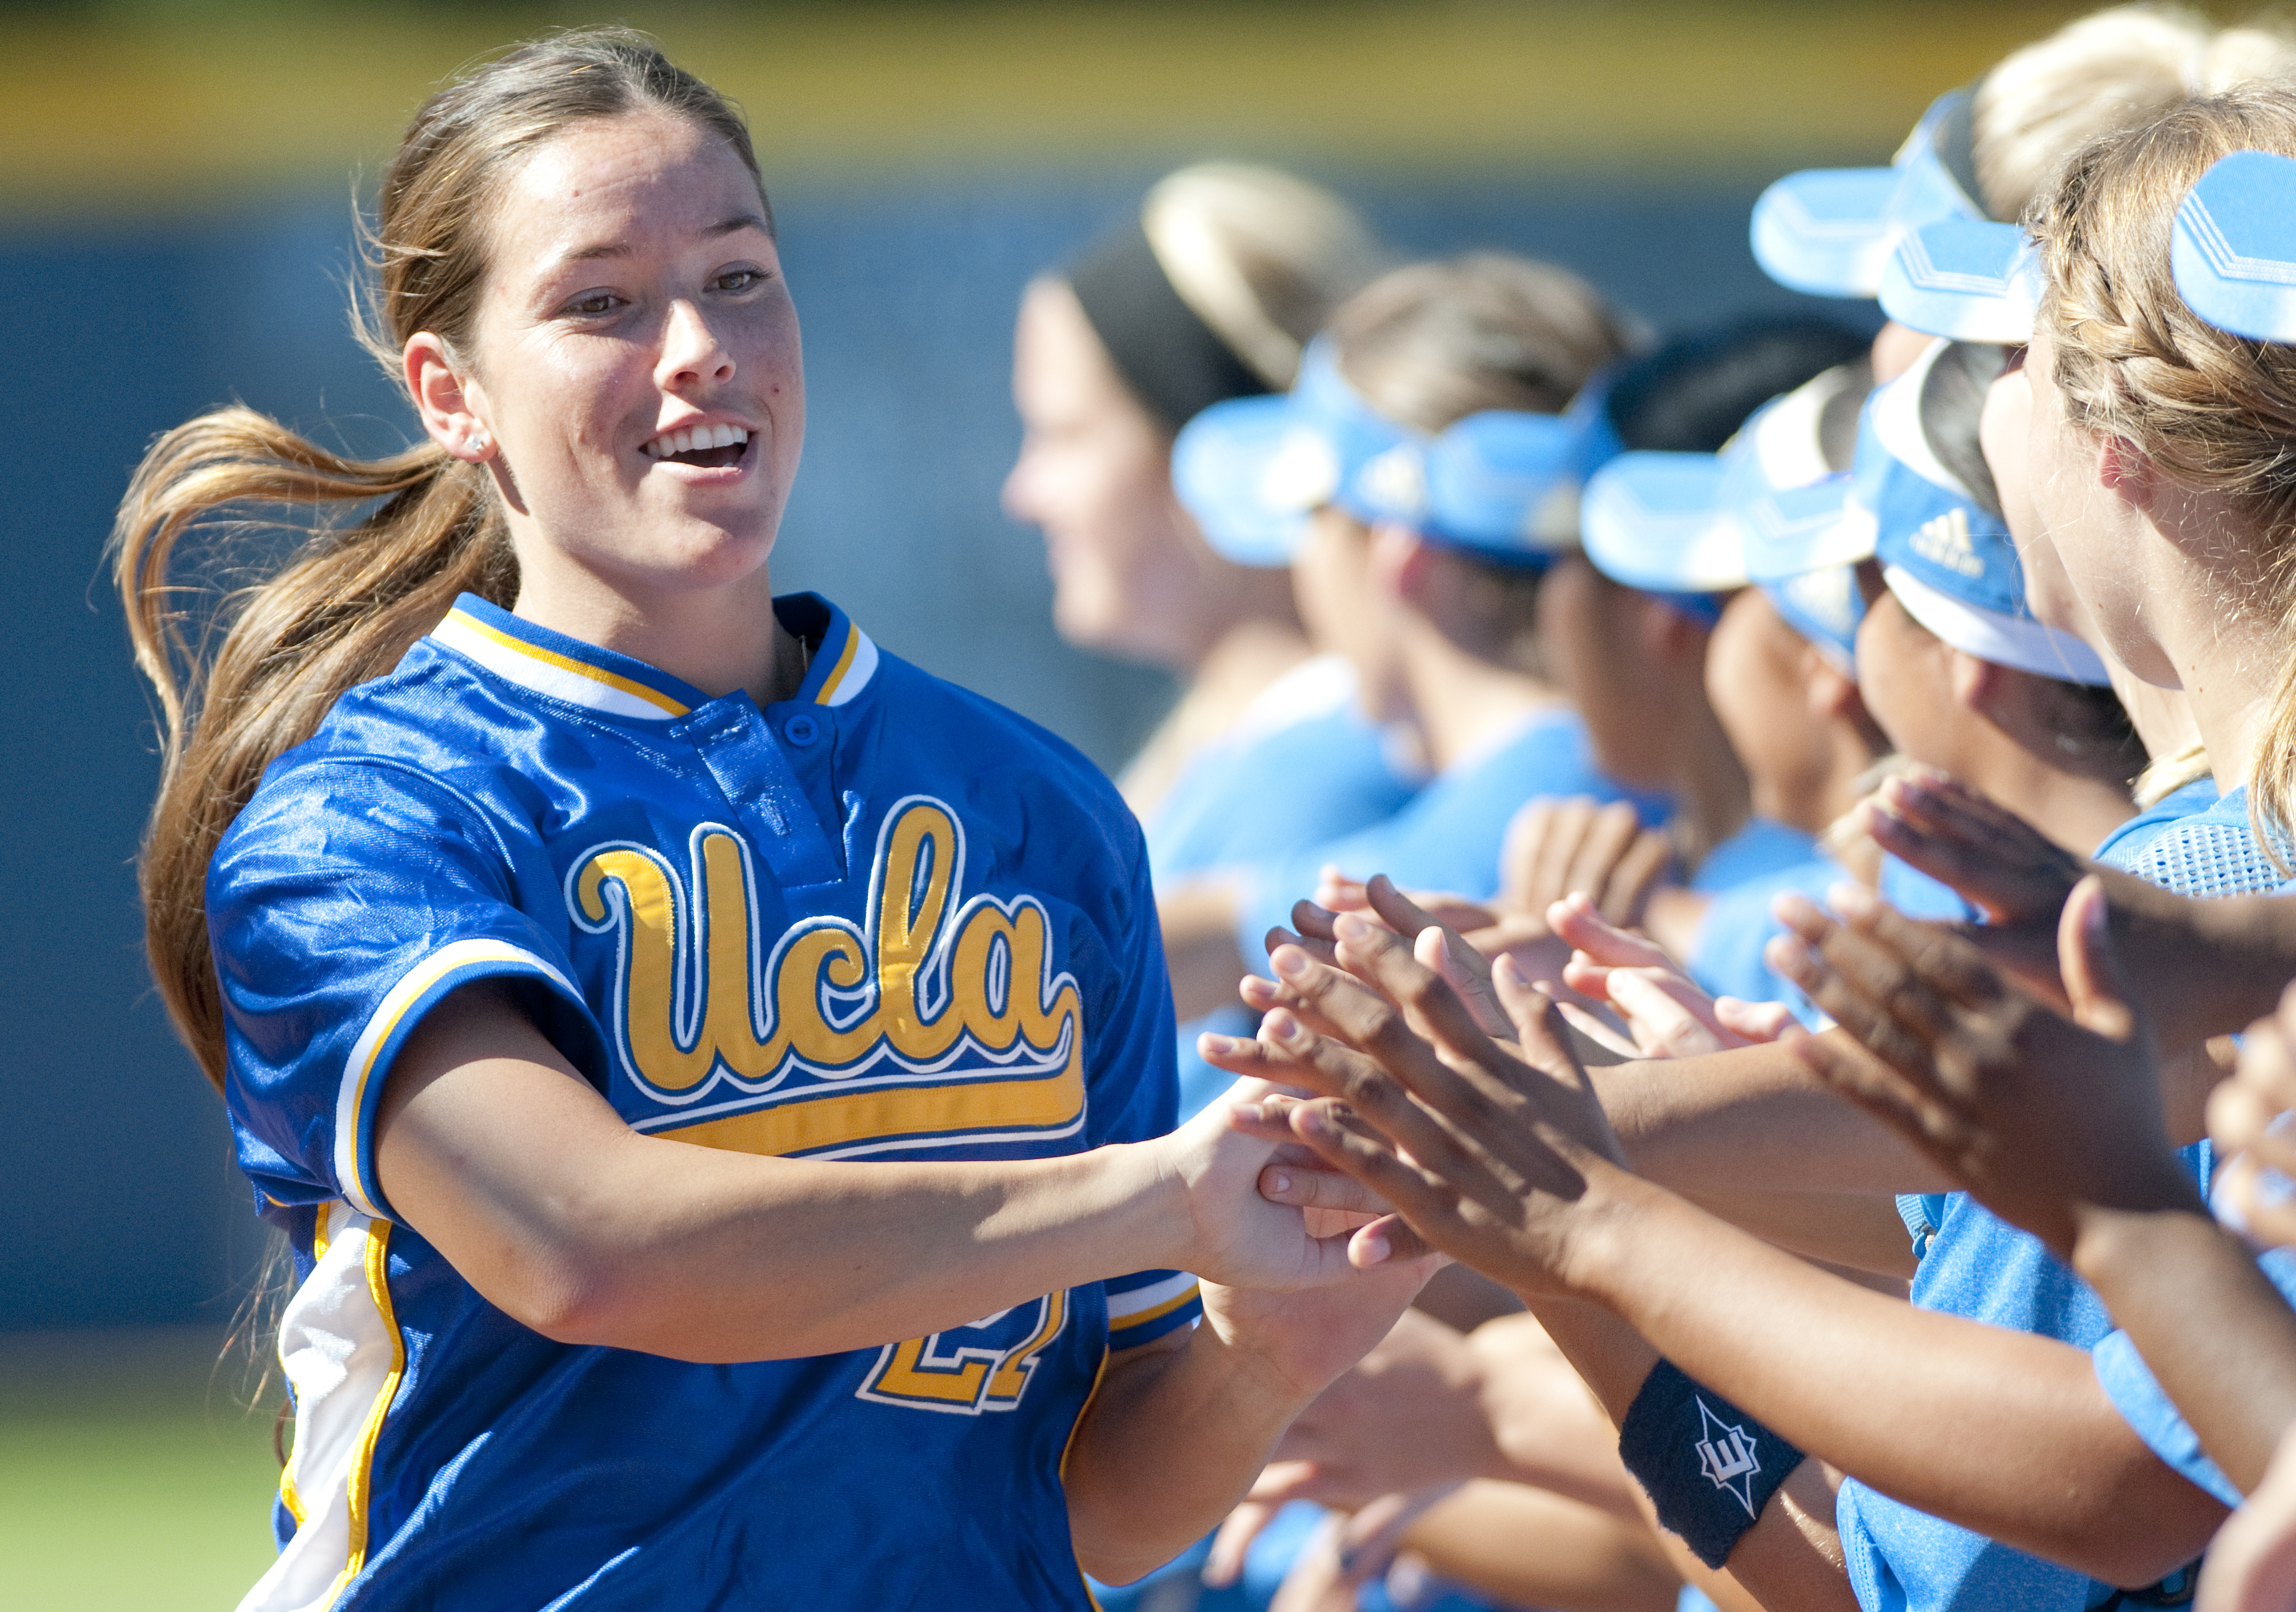 Shana Stewart played in the Alumni Game at Easton Stadium last weekend, where former and current Bruins participated in events including a home run derby and a clinic for aspiring Bruins. Stewart, who played for the Bruins until 2007, was joined by several other UCLA softball alumni.